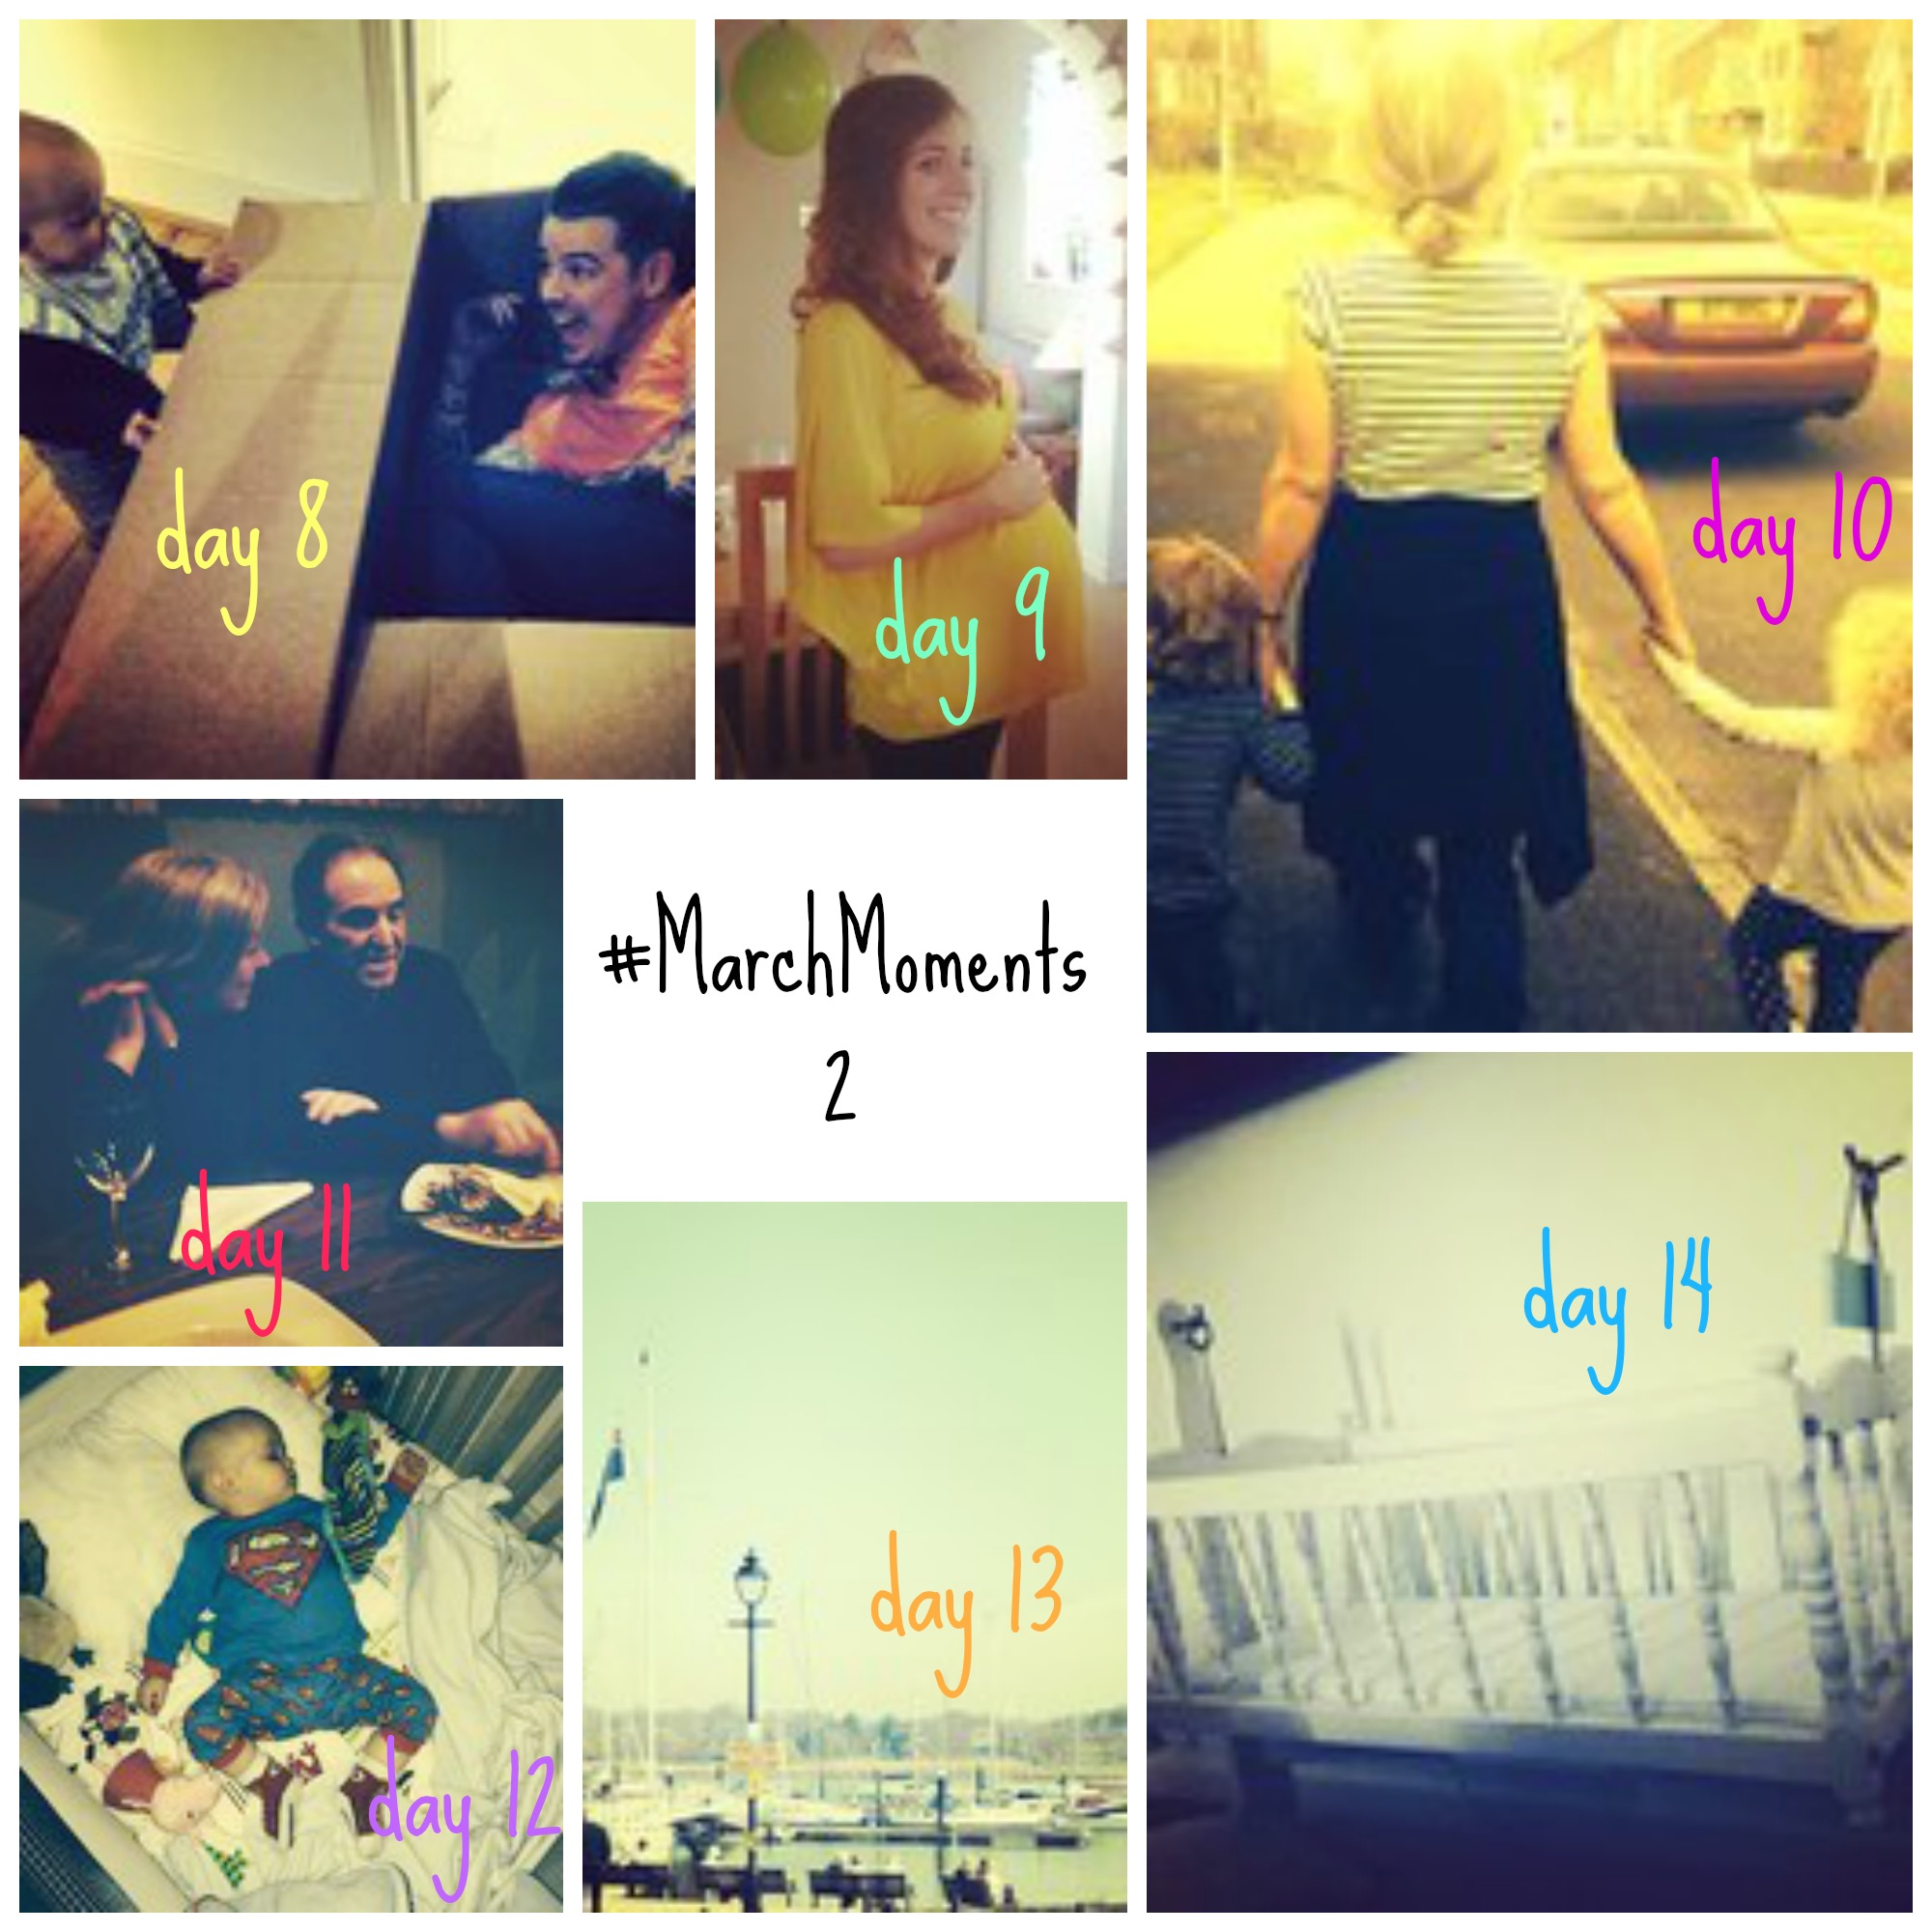 #MarchMoments 2